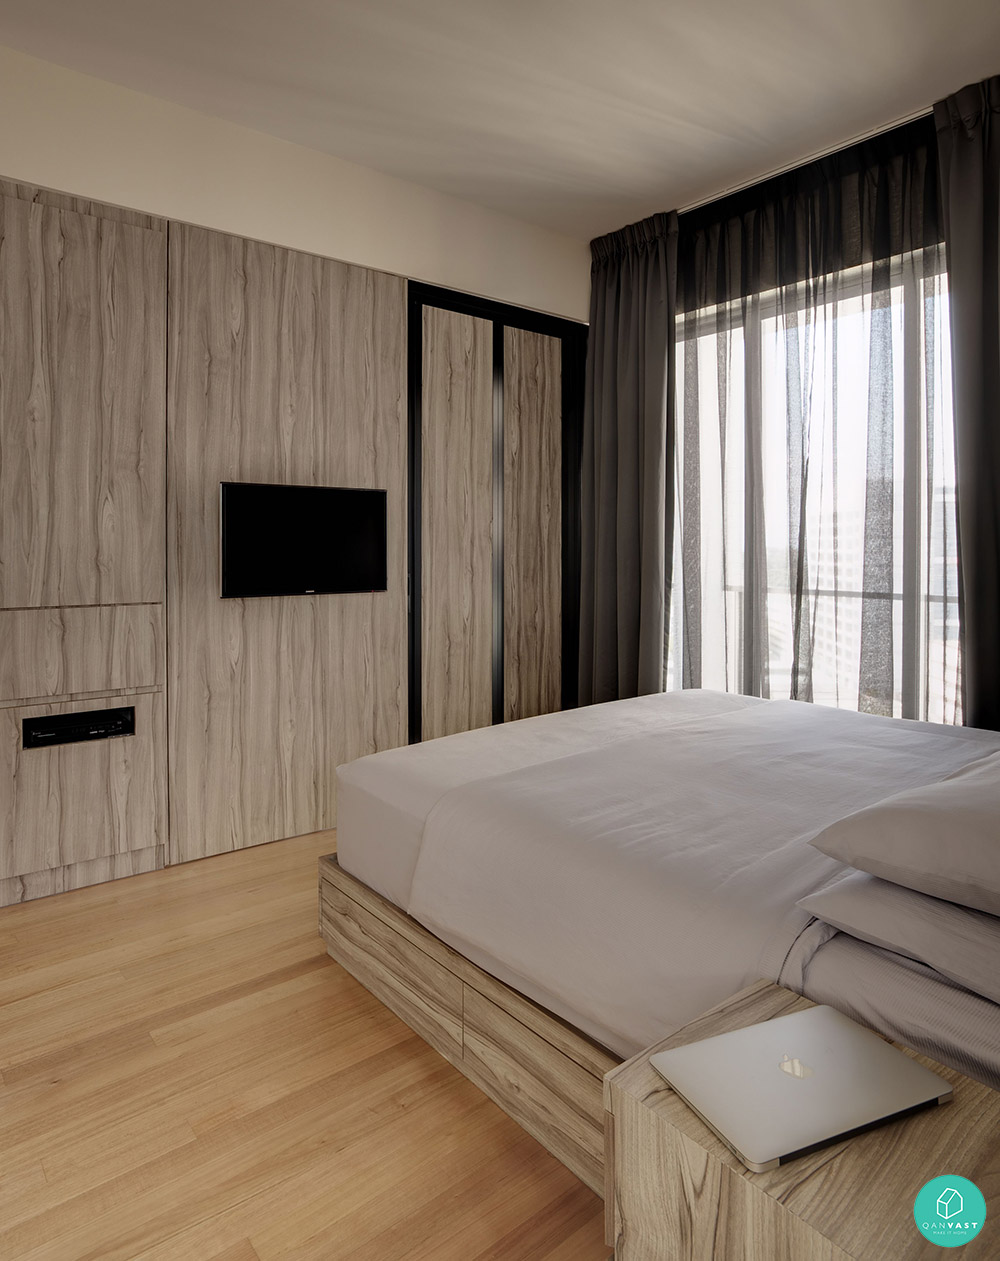 Smart designs for small spaces in singapore homes for 3 bedroom condo interior designs